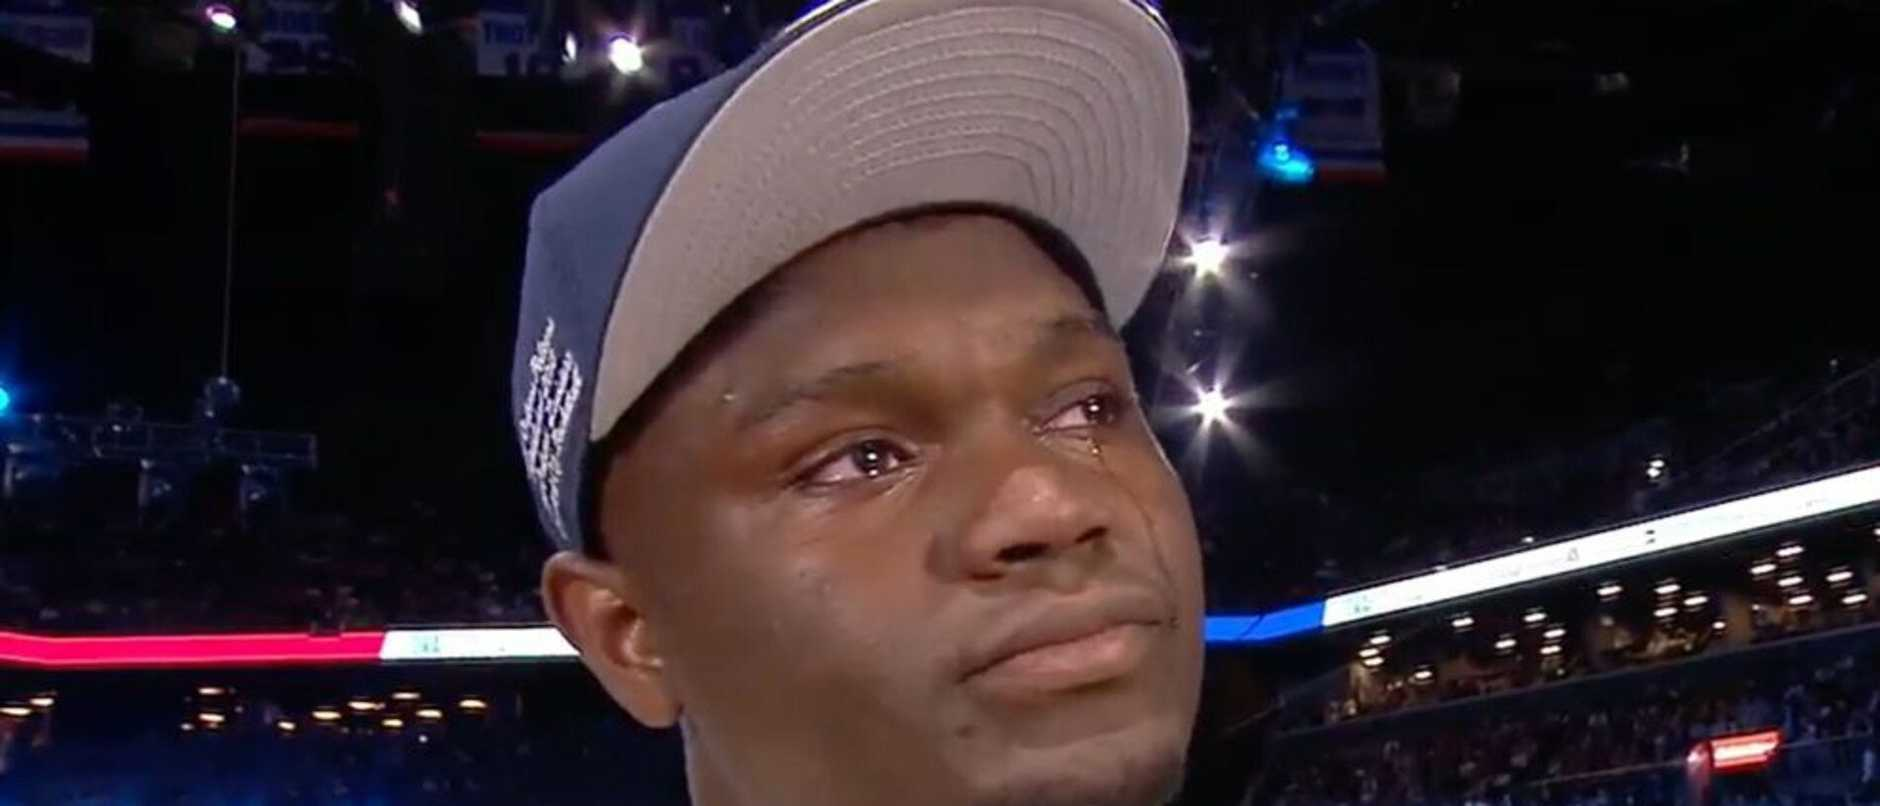 Zion Williamson couldn't hold back the tears after being selected at No.1 in the 2019 NBA Draft.